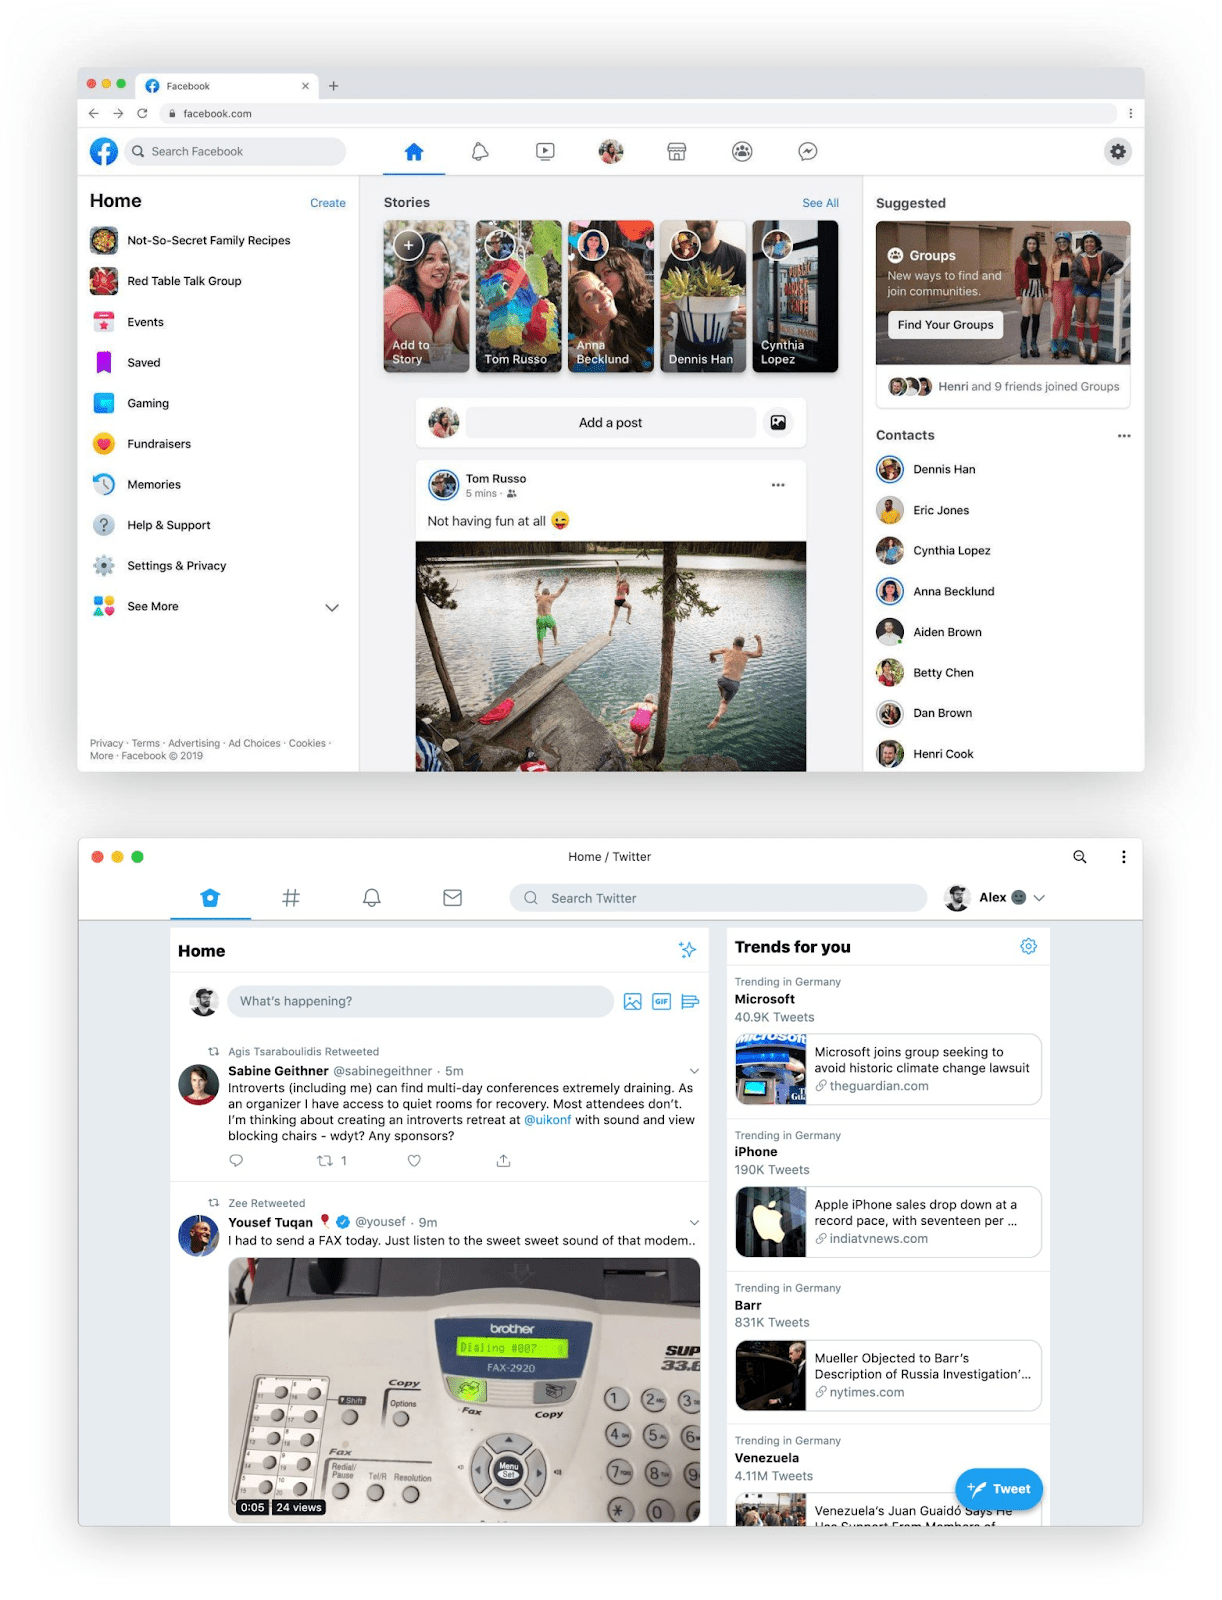 Facebook's 2019 Redesign, compared to Twitter by Alex Muench